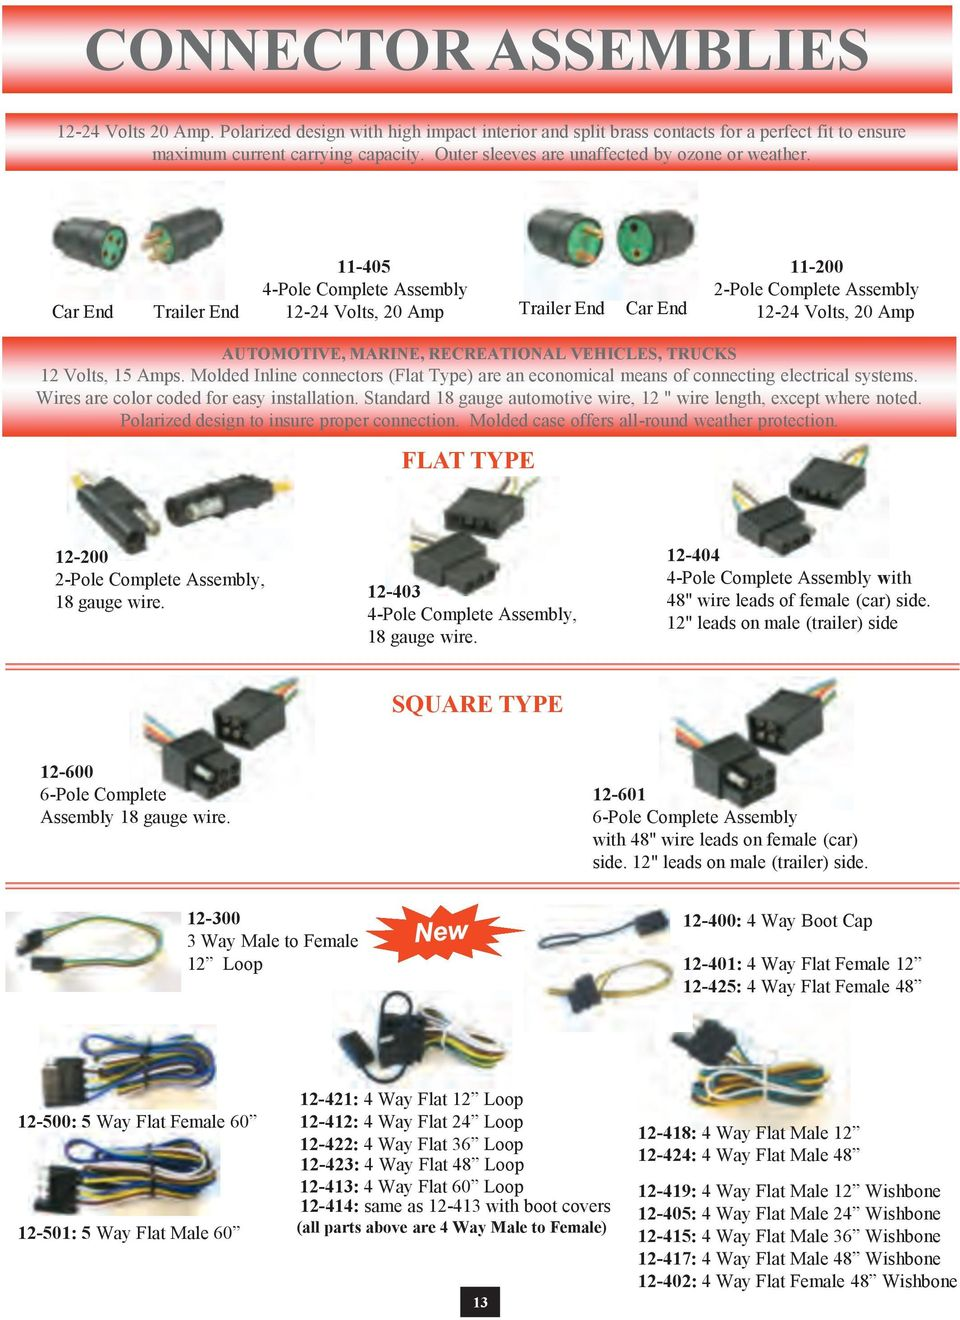 Pollak A Stoneridge Company Engineered Solutions To Design Flat Car End Wiring Connector Trailer 11 405 4 Pole Complete Assembly 12 24 Volts